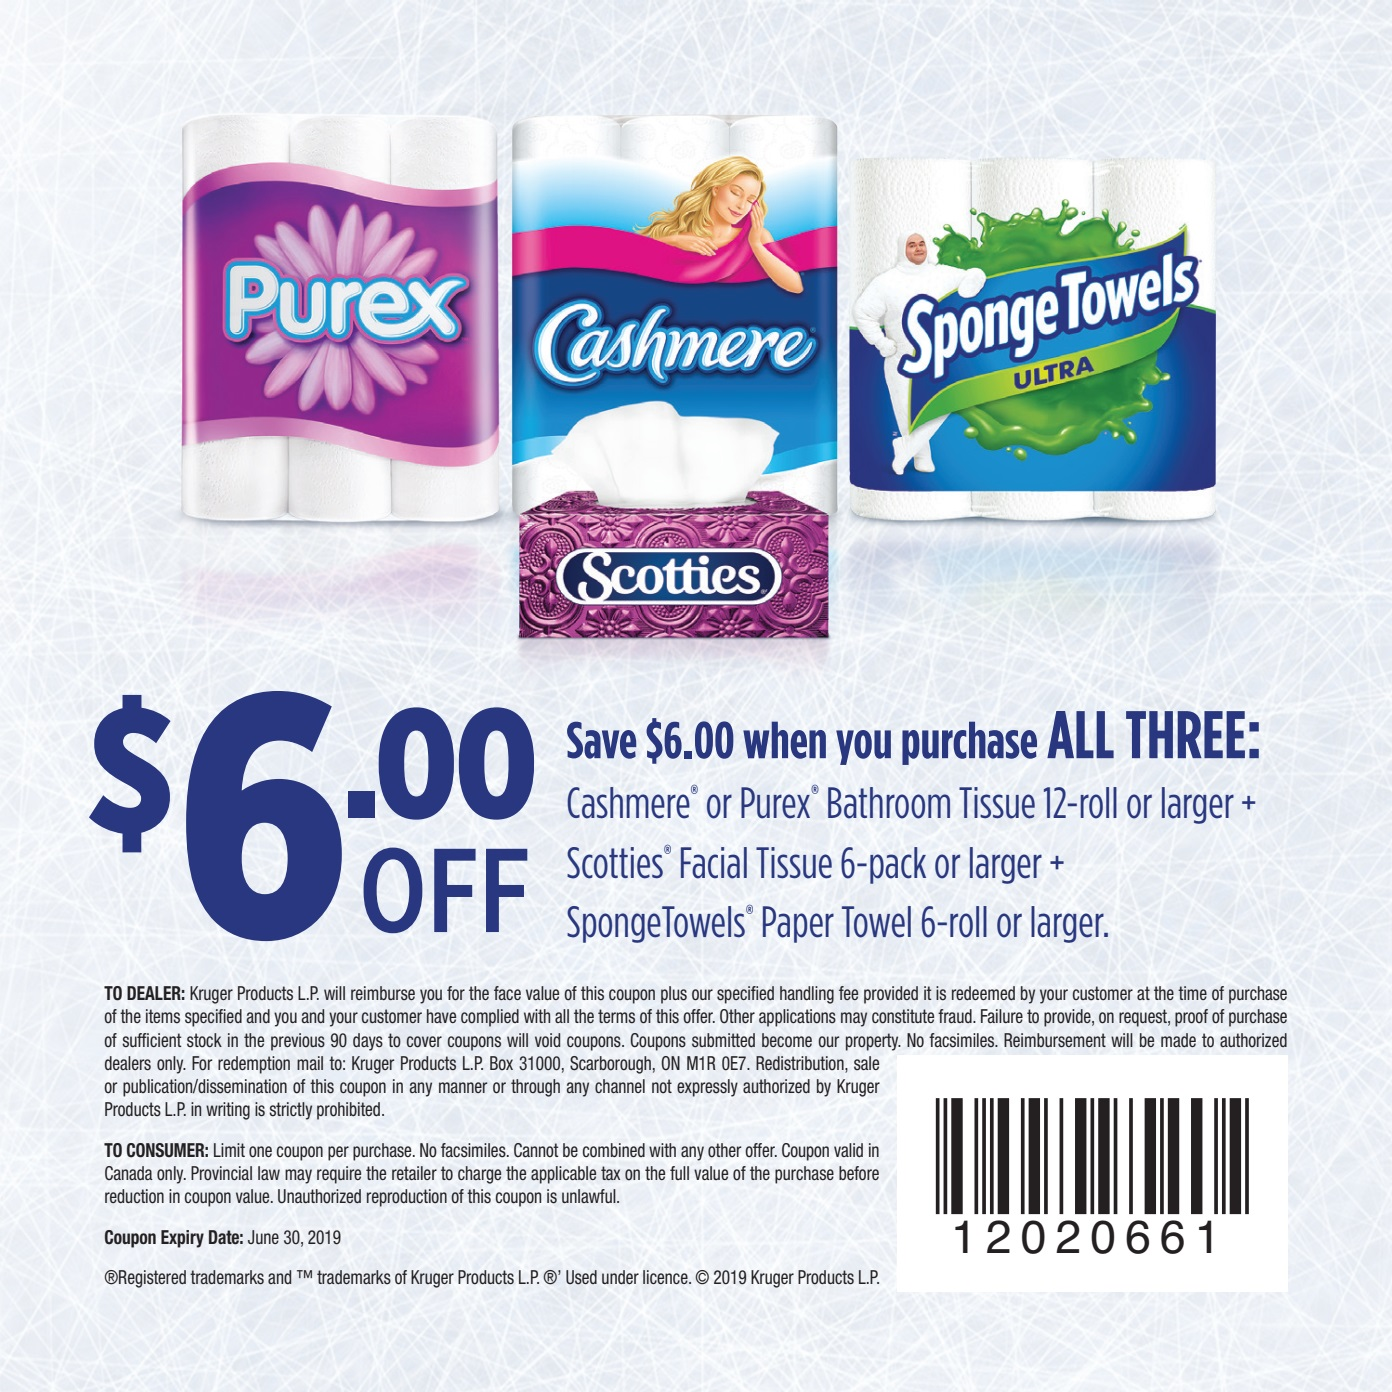 photograph regarding Purex Coupons Printable known as Cashmere, Purex, SpongeTowels or Scotties - Info